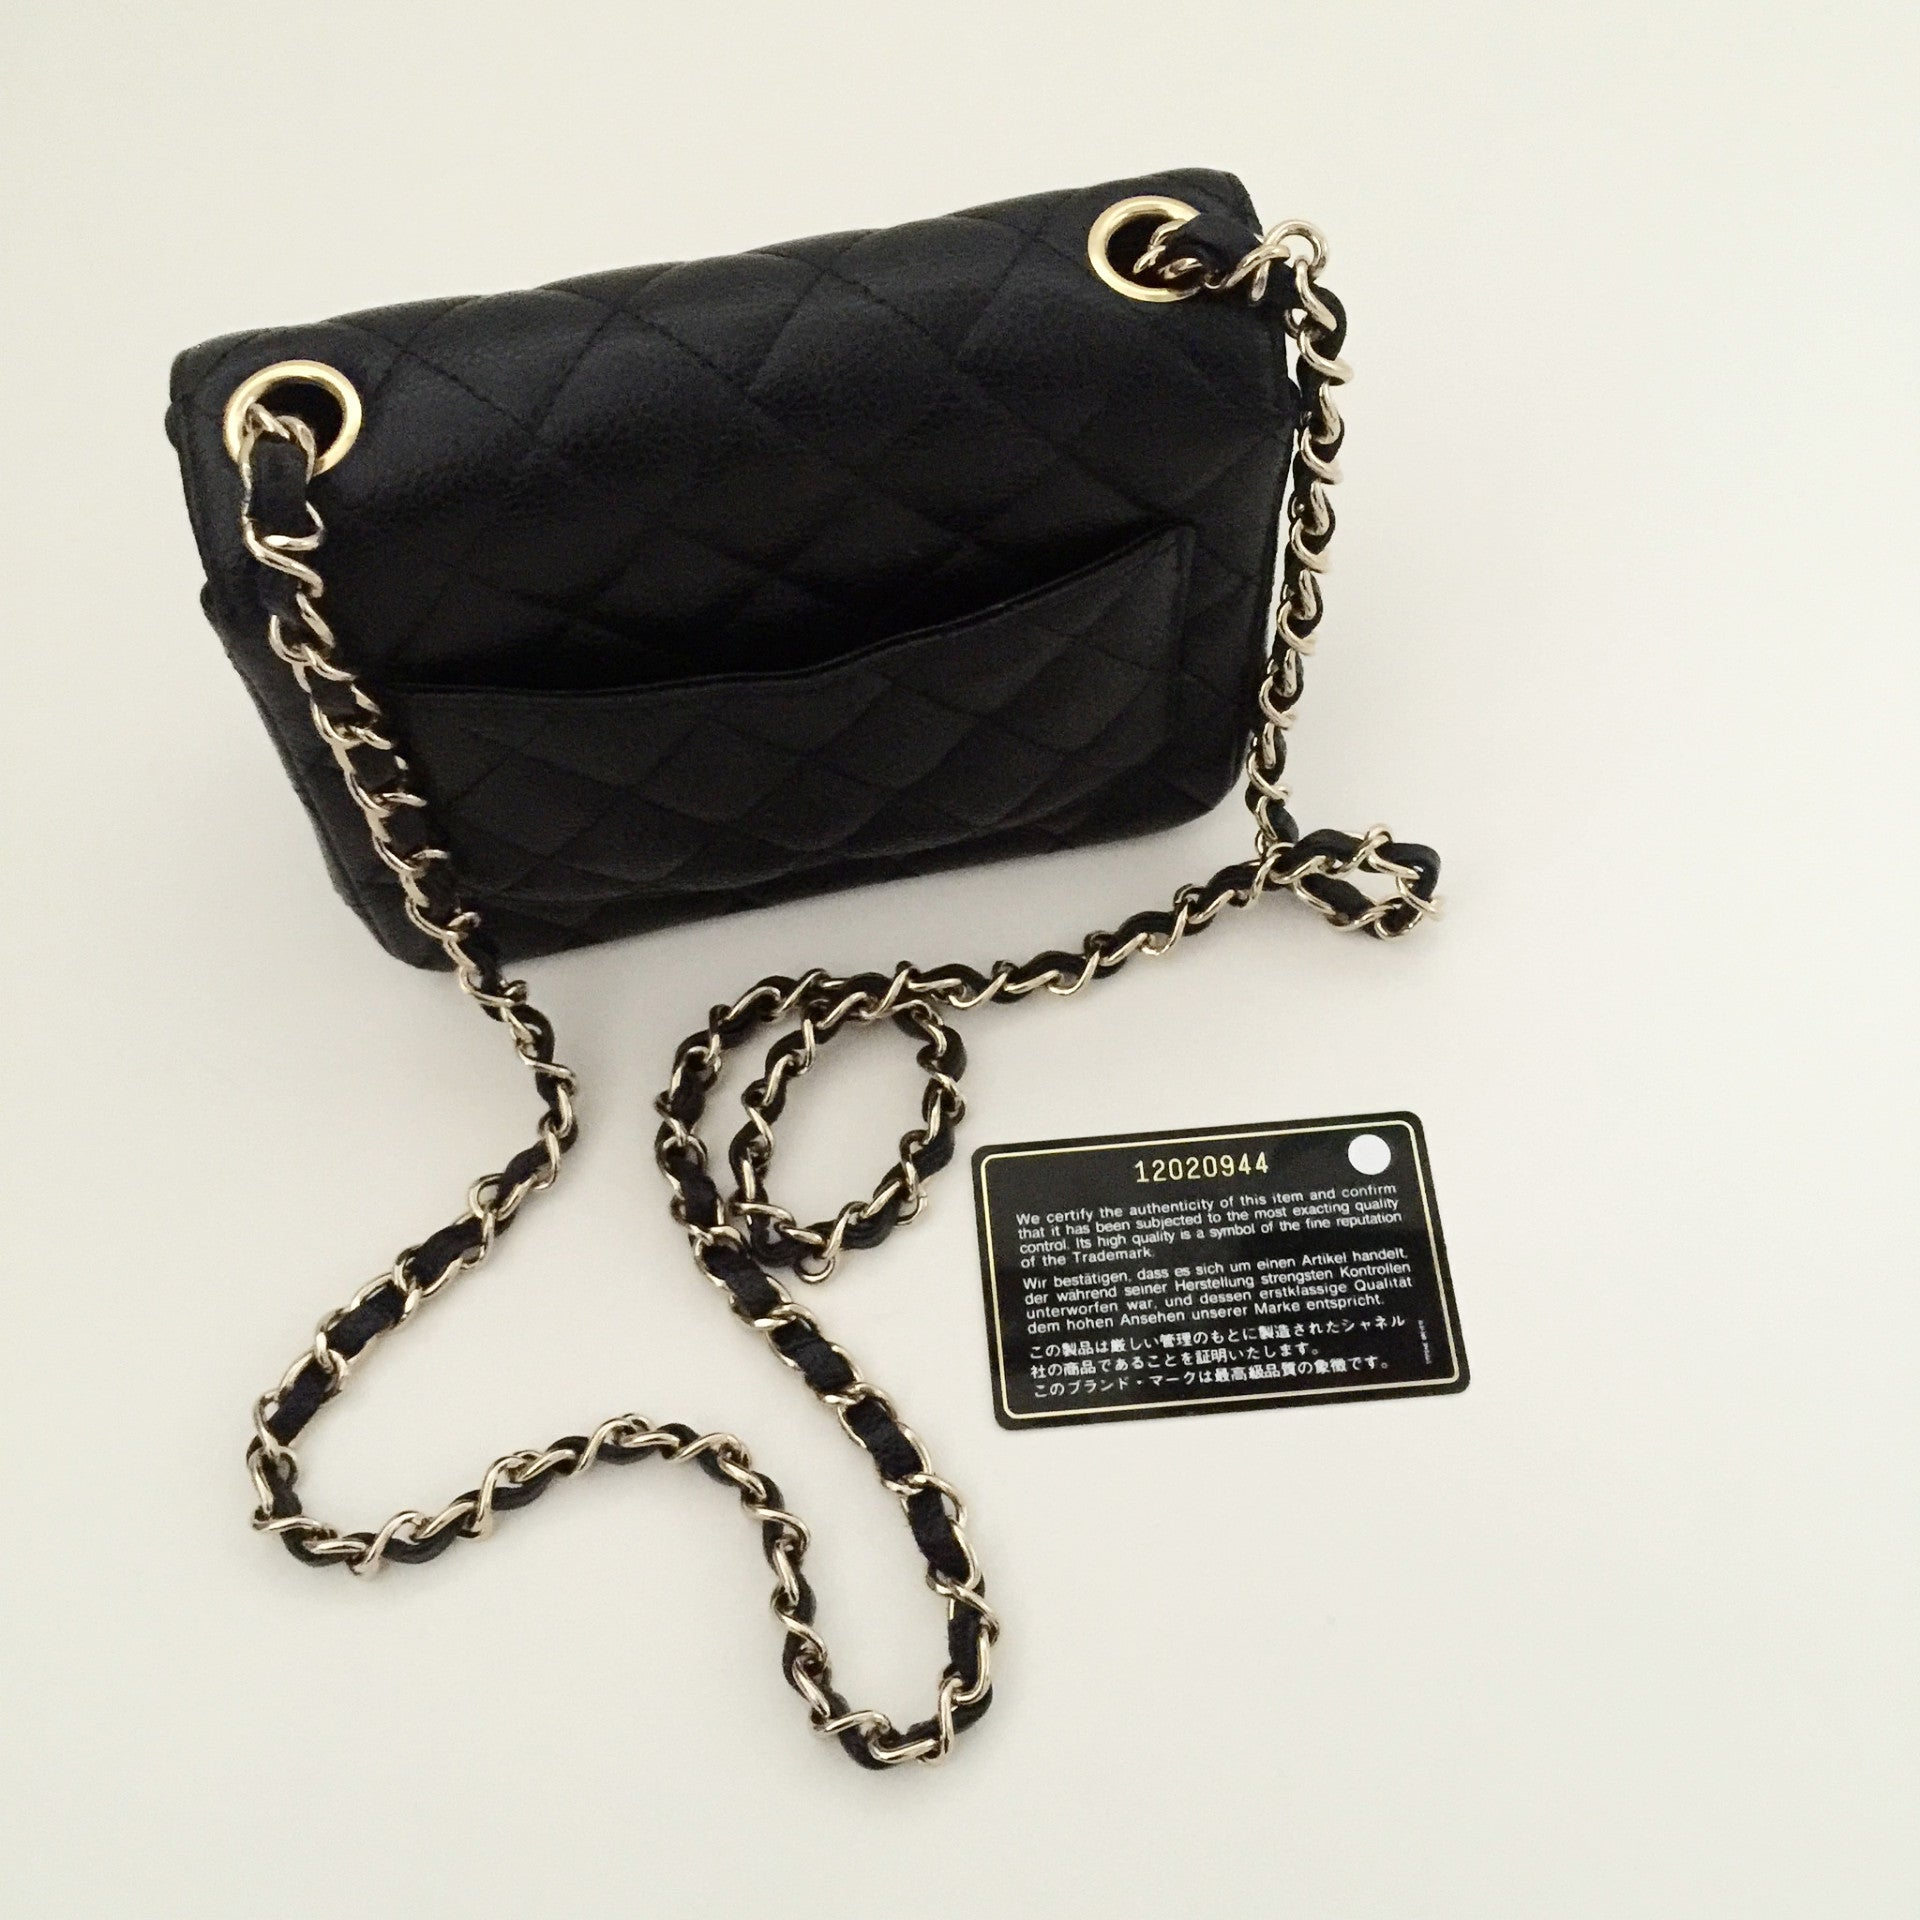 Authentic CHANEL Mini Flap in Caviar Gold